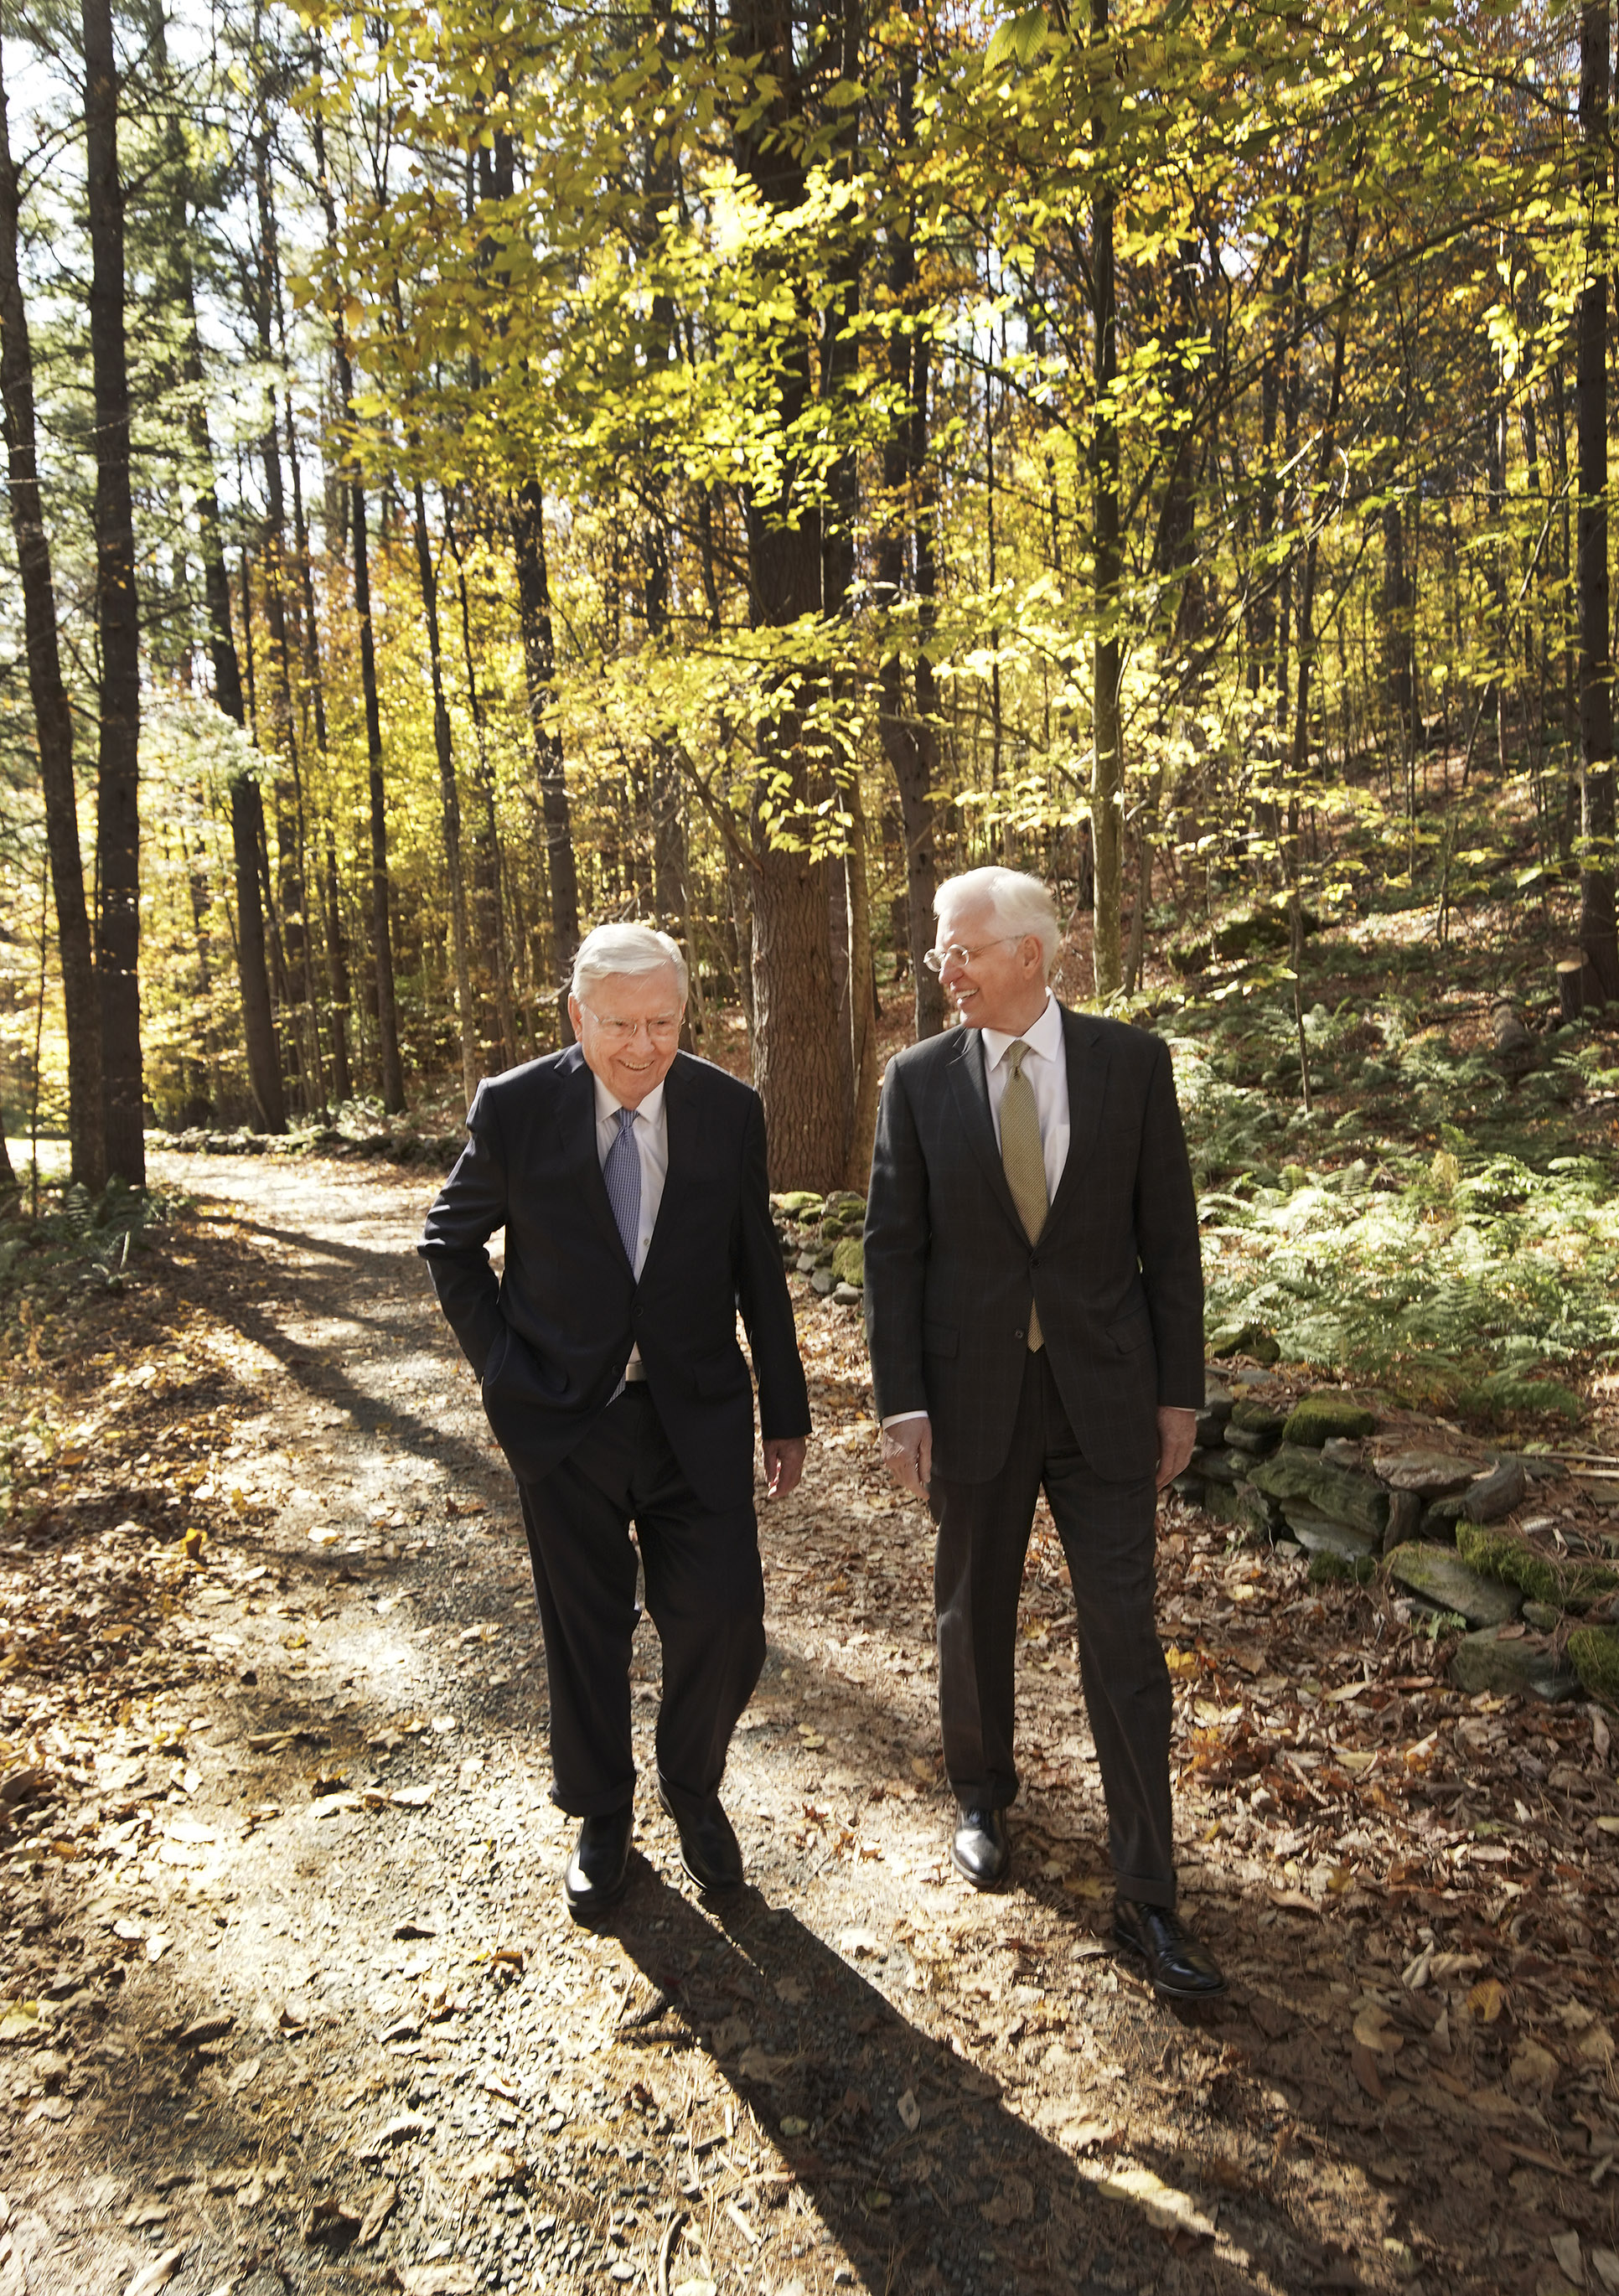 President M. Russell Ballard, acting president of the Quorum of the Twelve Apostles of The Church of Jesus Christ of Latter-day Saints, and Elder D. Todd Christofferson of the Quorum of the Twelve Apostles walk at the Joseph Smith Birthplace Memorial in Sharon, Vt., on Saturday, Oct. 19, 2019.